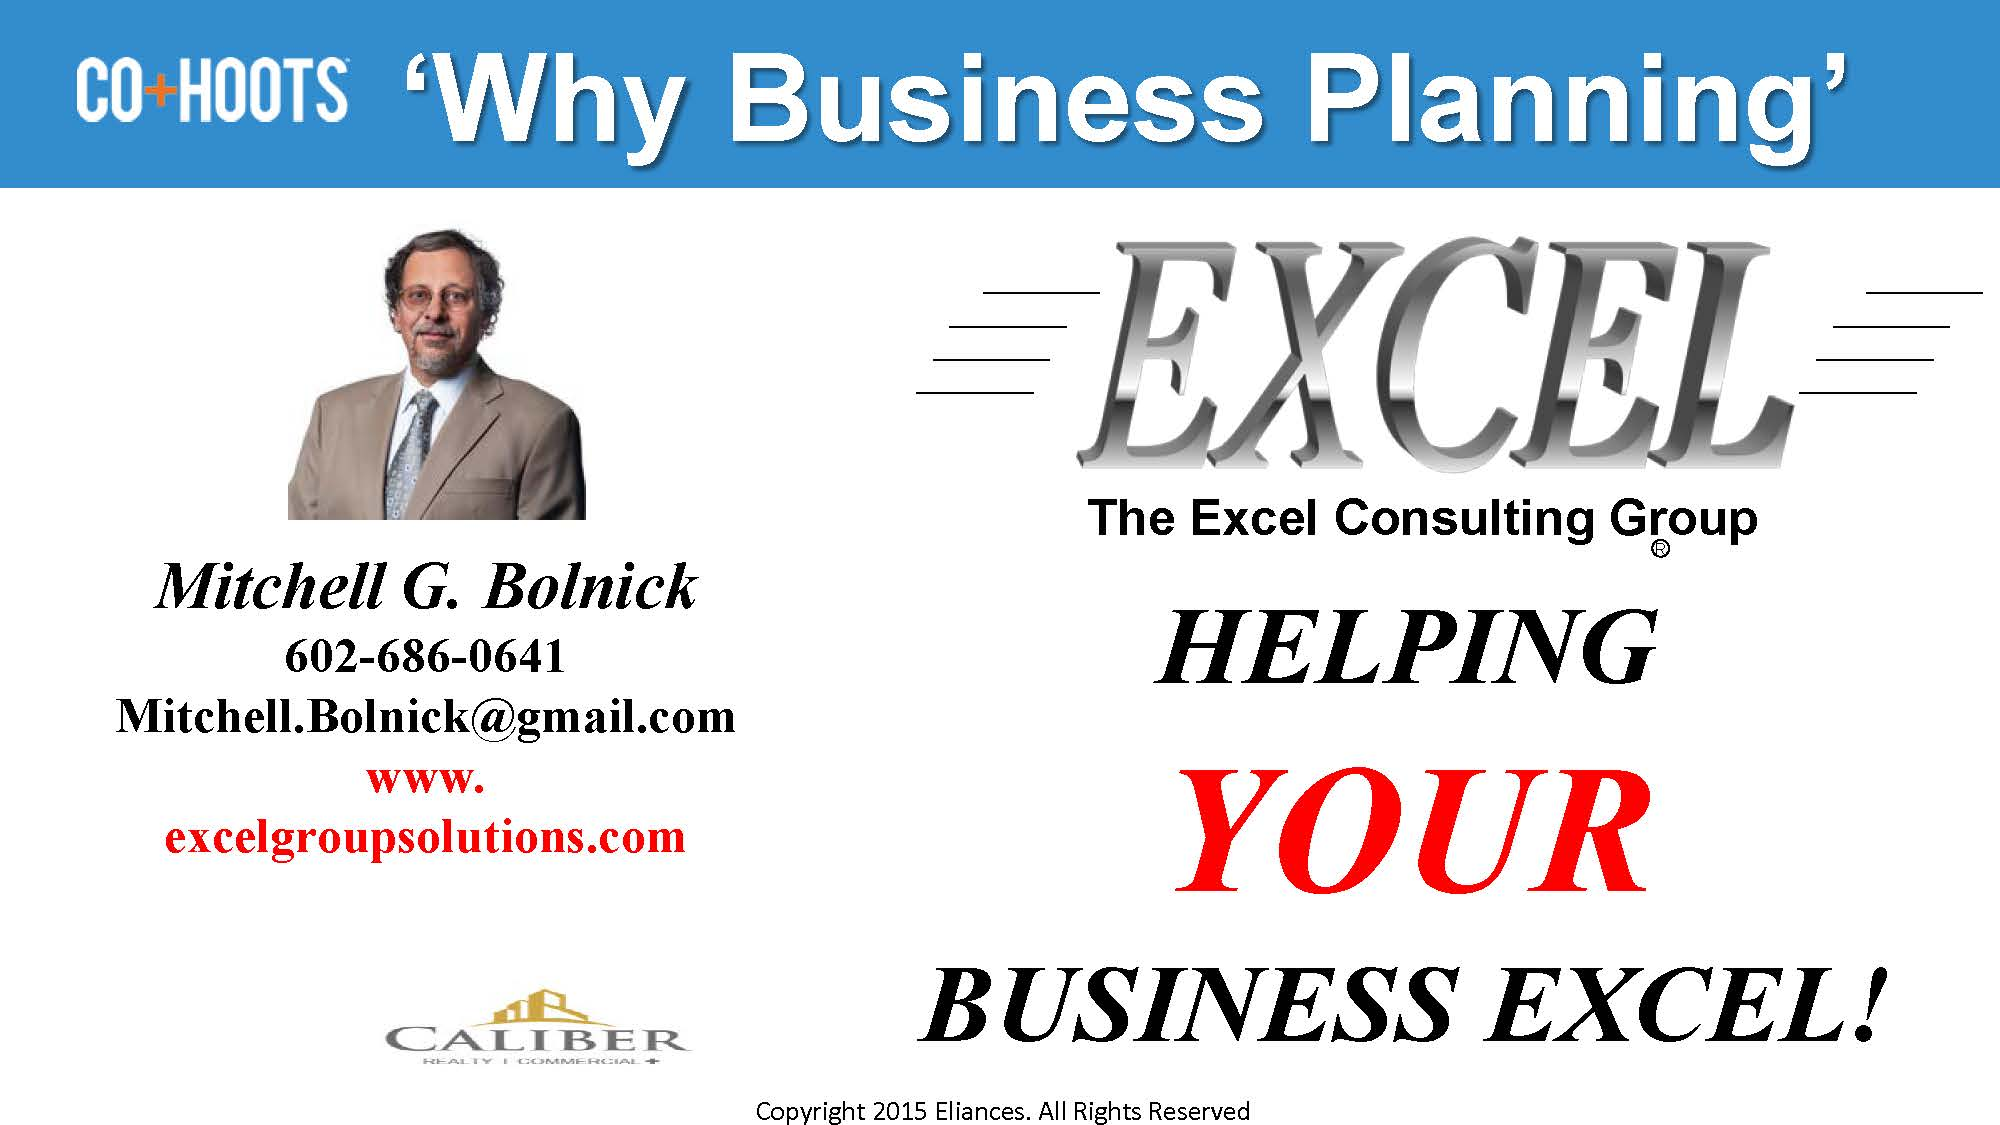 Why Business Planning